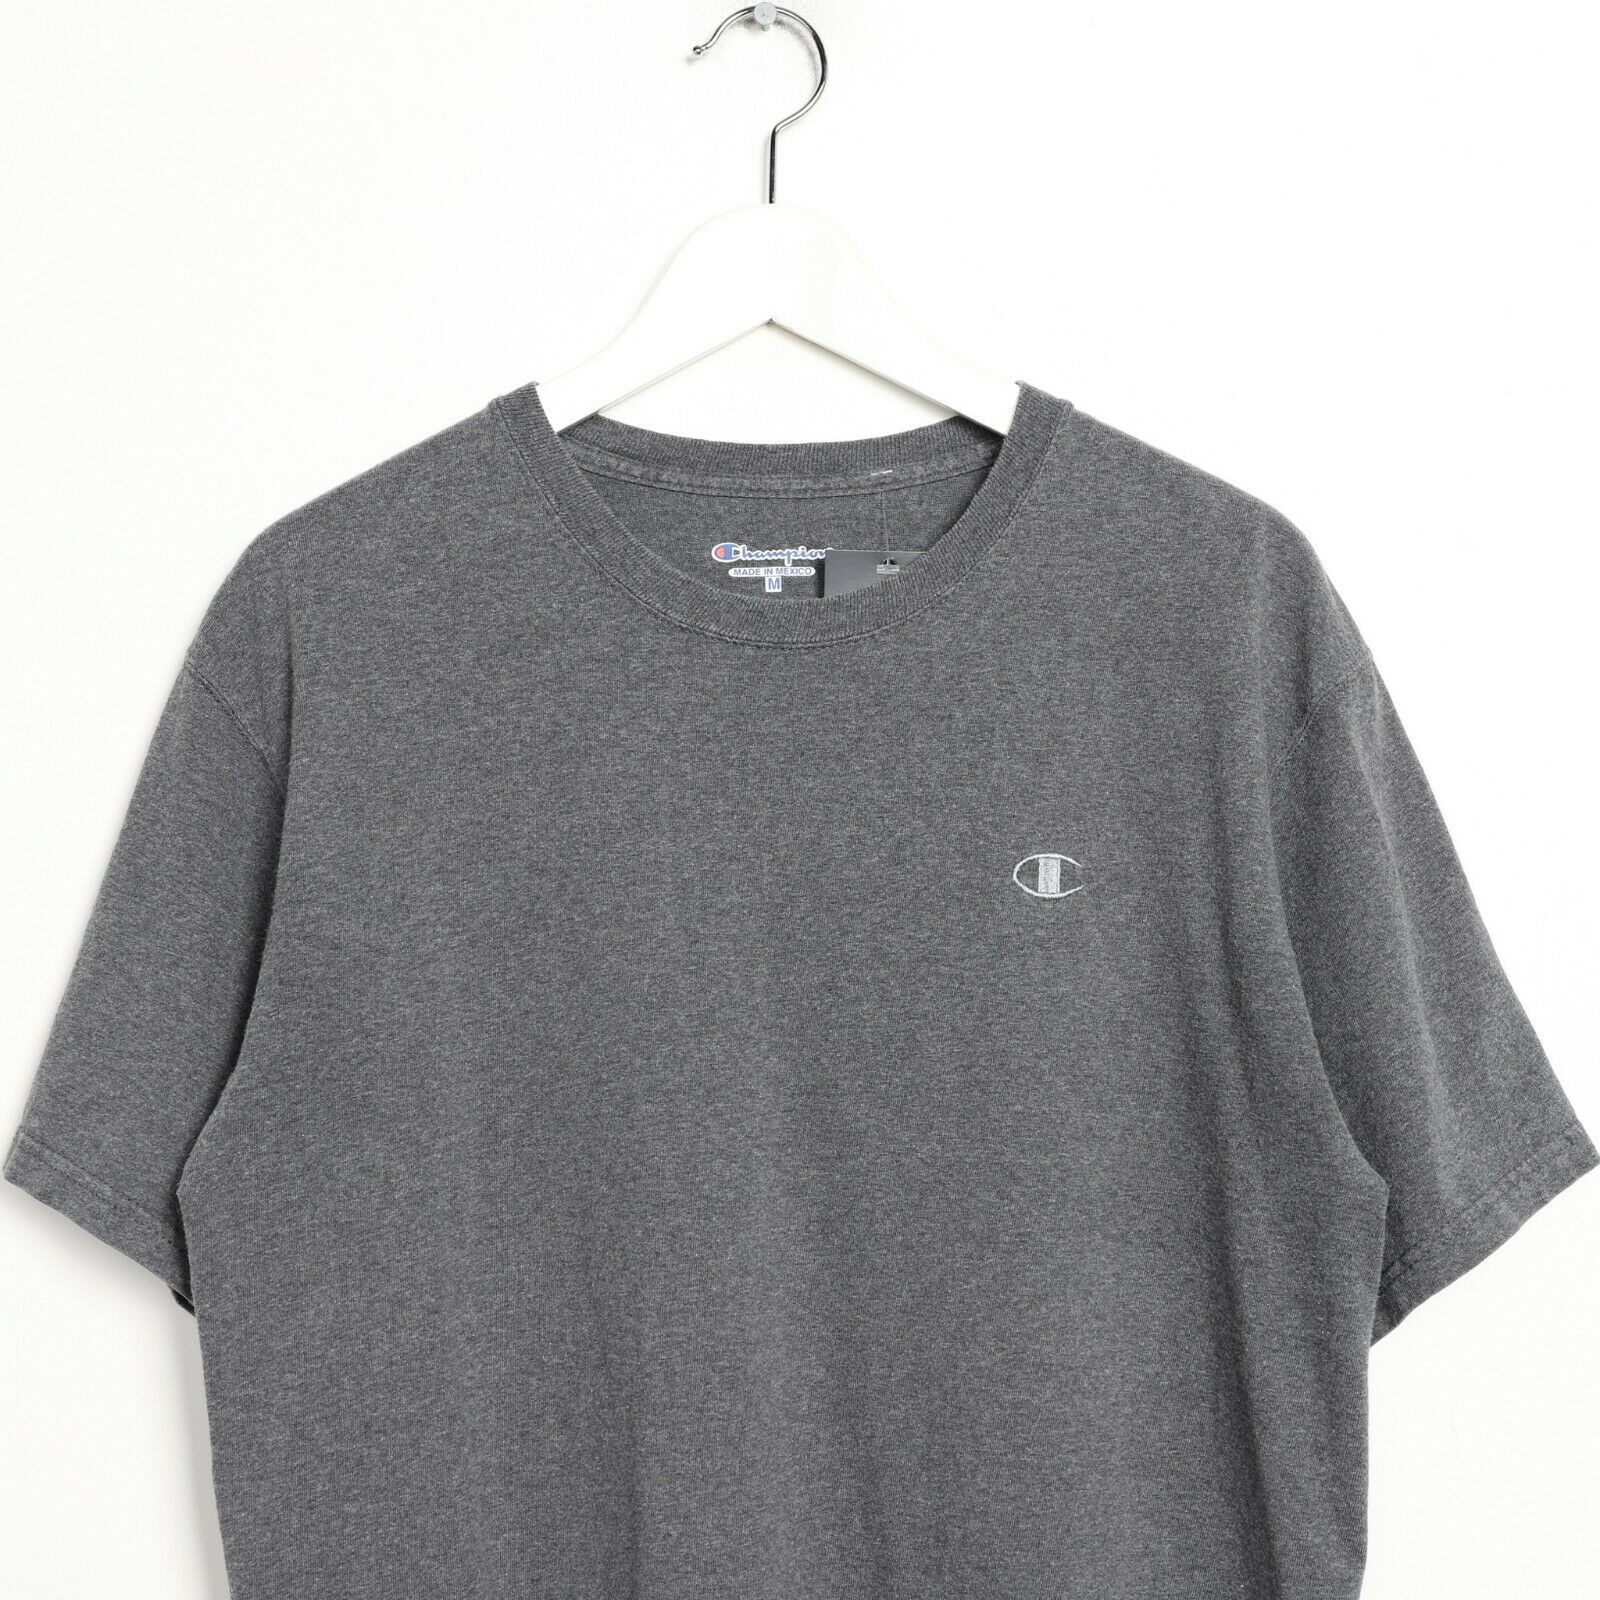 Vintage CHAMPION Small Logo T Shirt Tee Grey Medium M